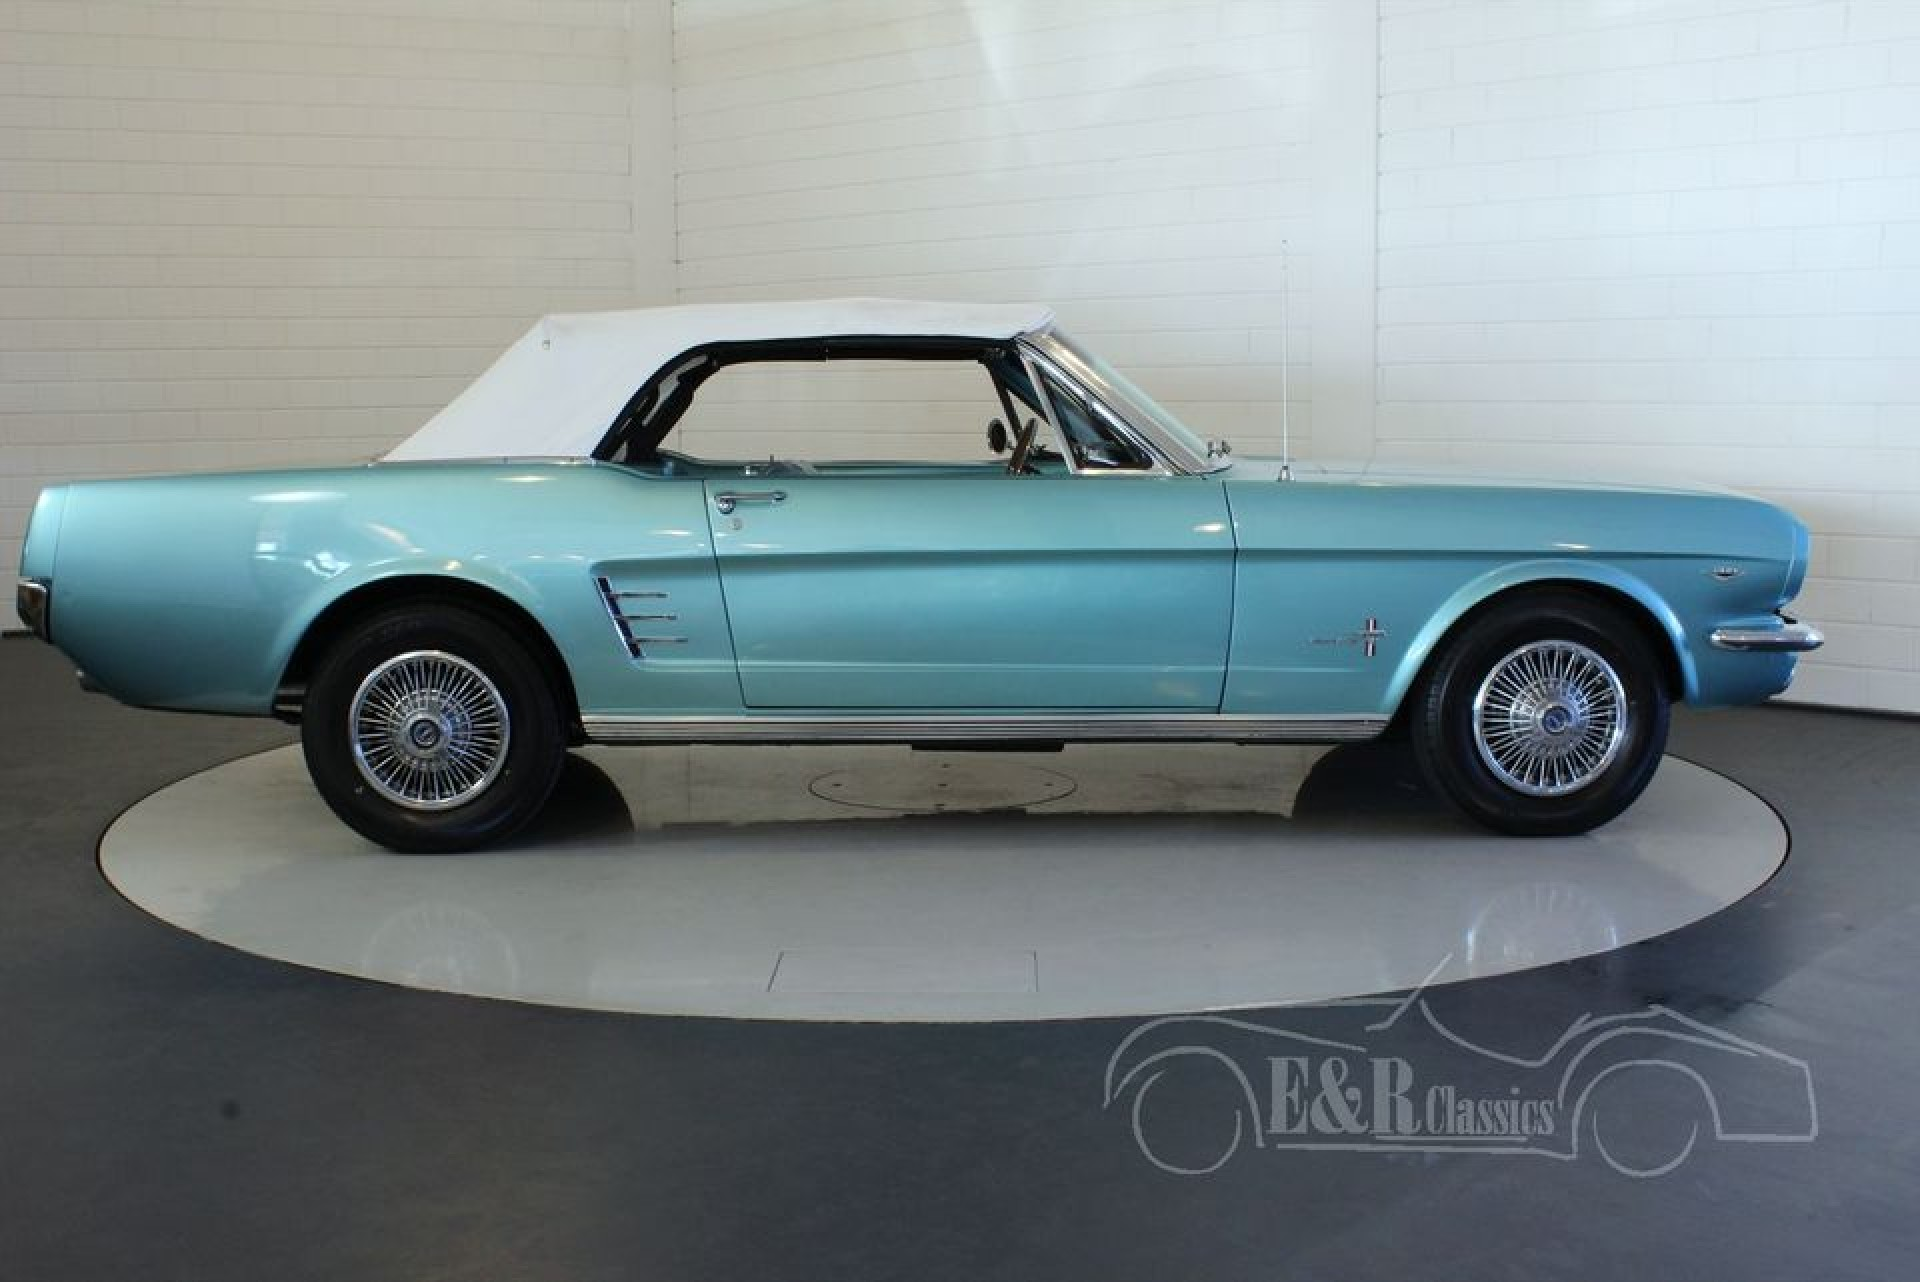 ford mustang v8 cabriolet 1966 vendre erclassics. Black Bedroom Furniture Sets. Home Design Ideas